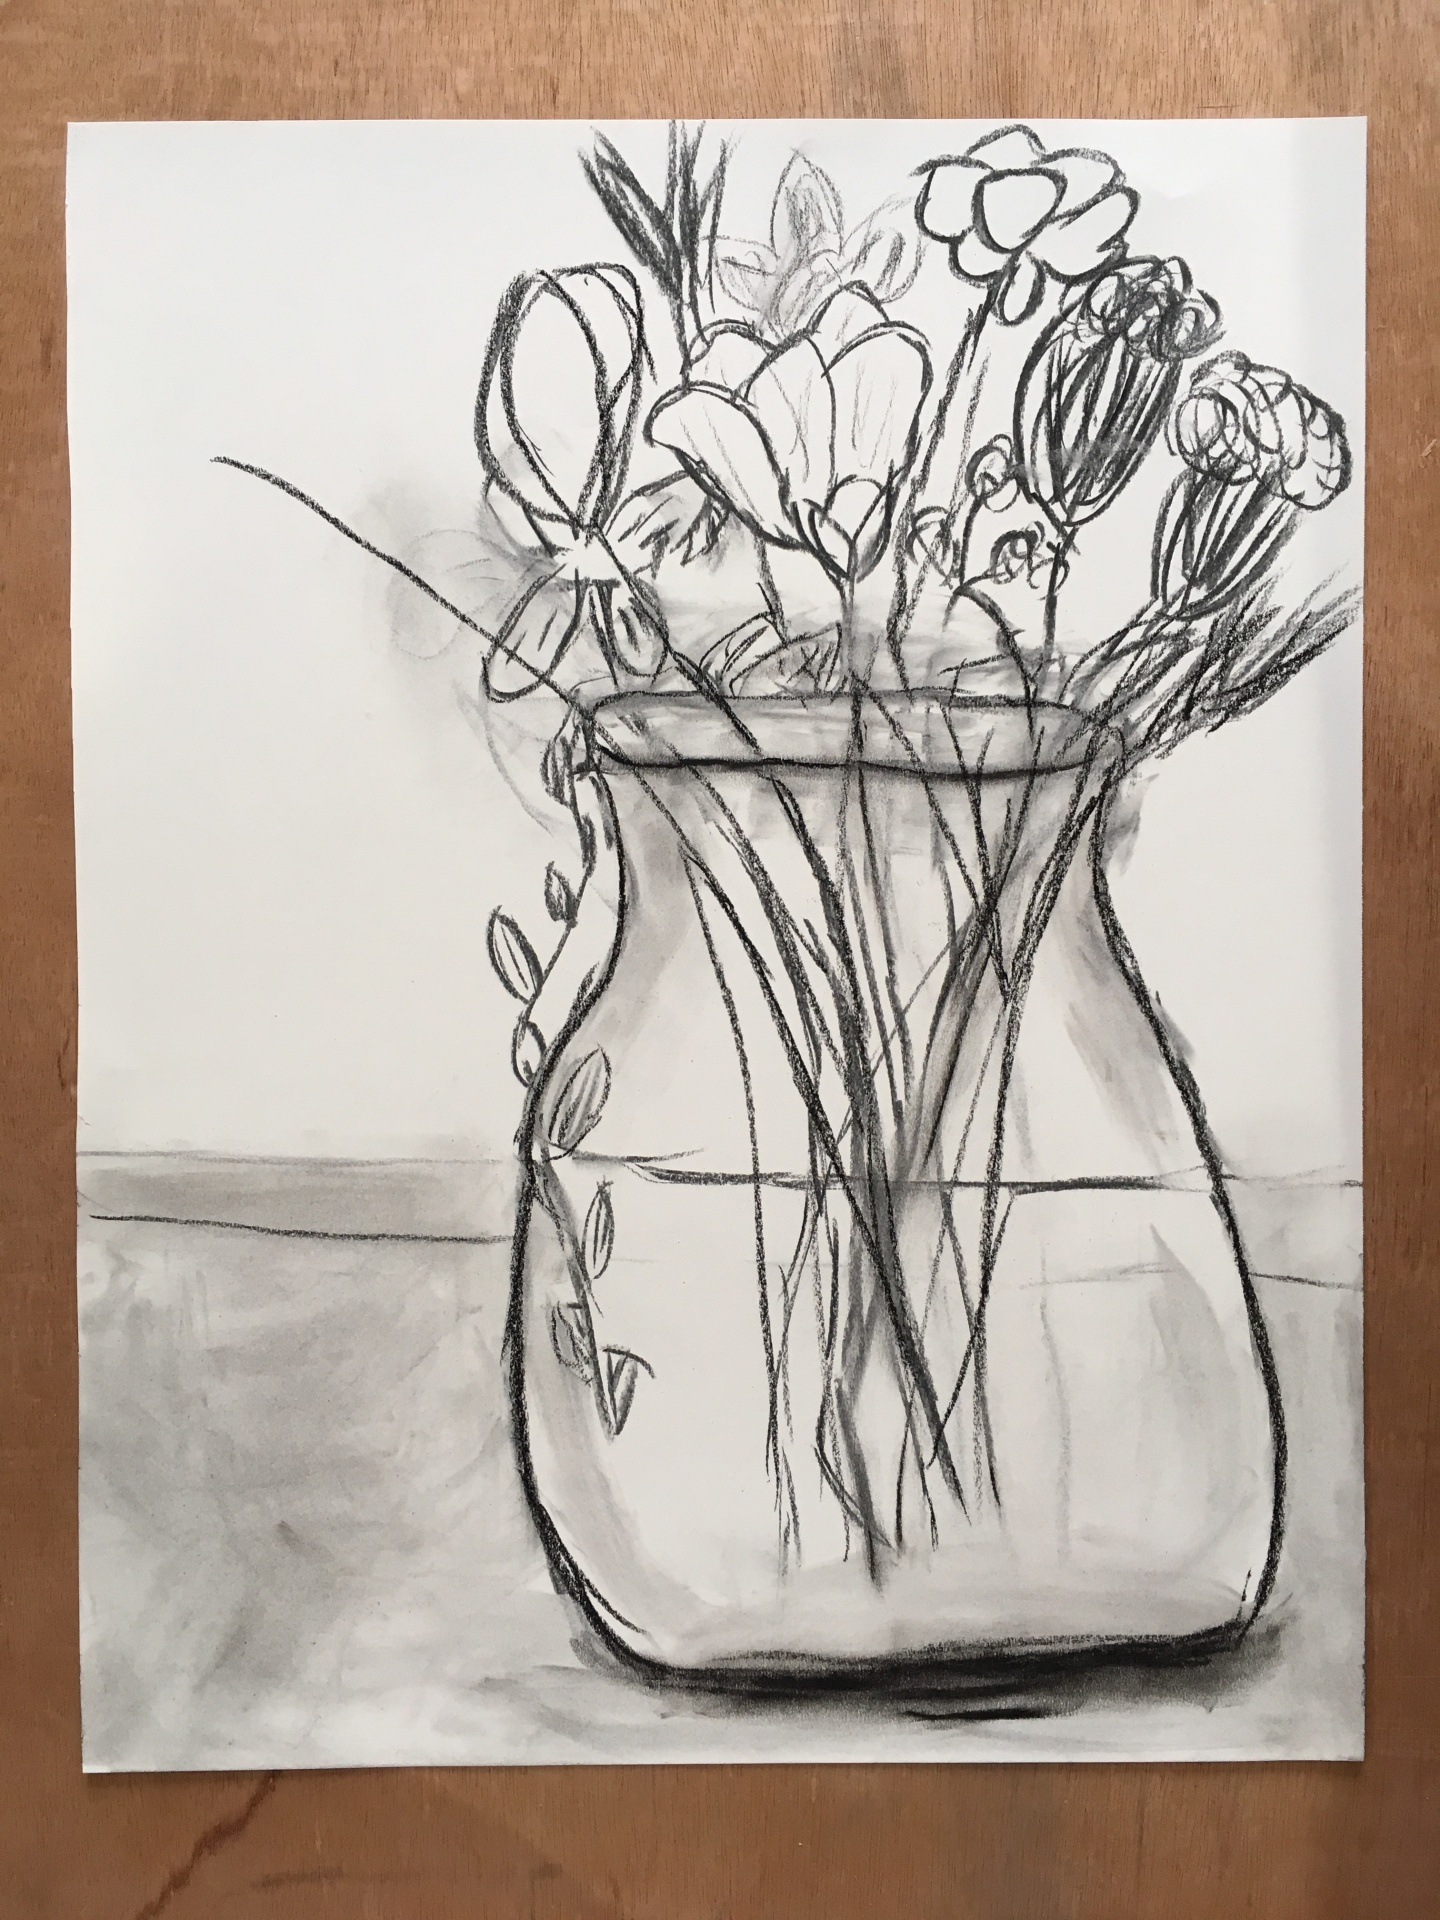 Cate's Charcoal Drawing